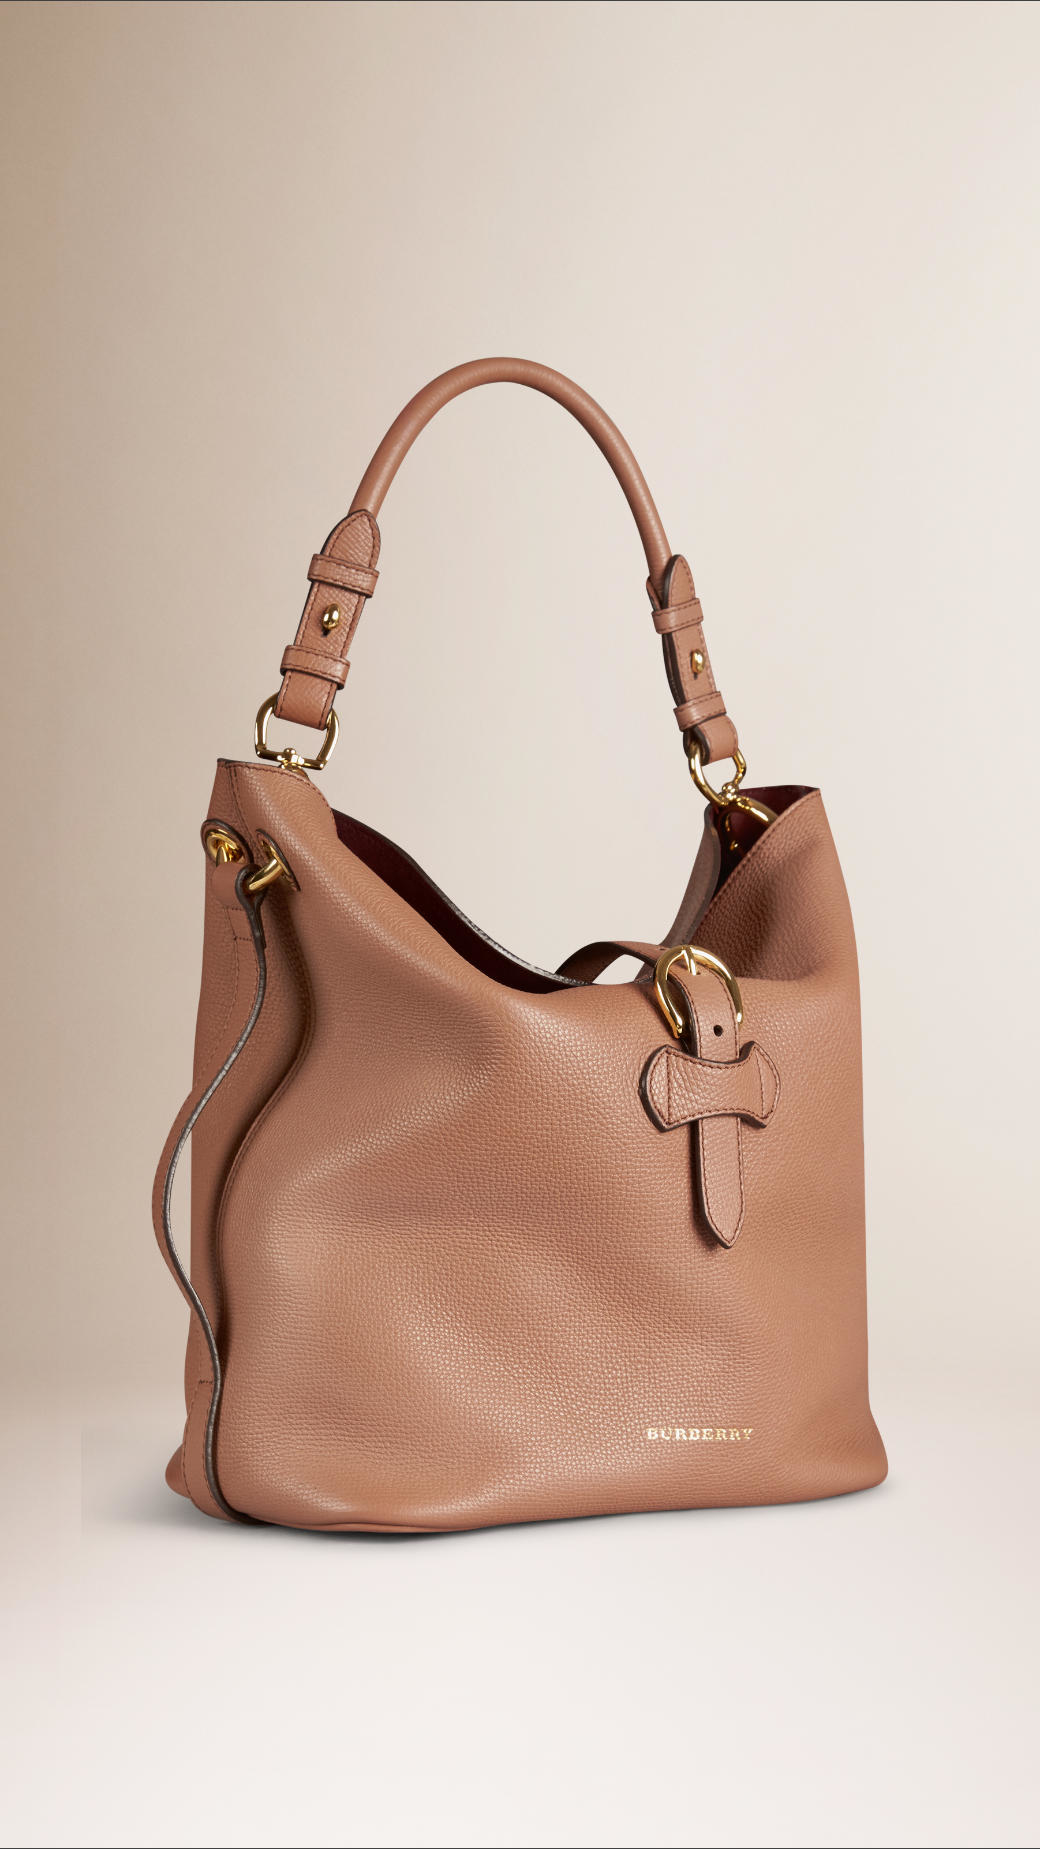 26111933953 Burberry Bartow Black Grainy Leather Hobo Bag 3764088. Gallery. Burberry  Medium Buckle Detail Leather Hobo Bag In Natural Lyst